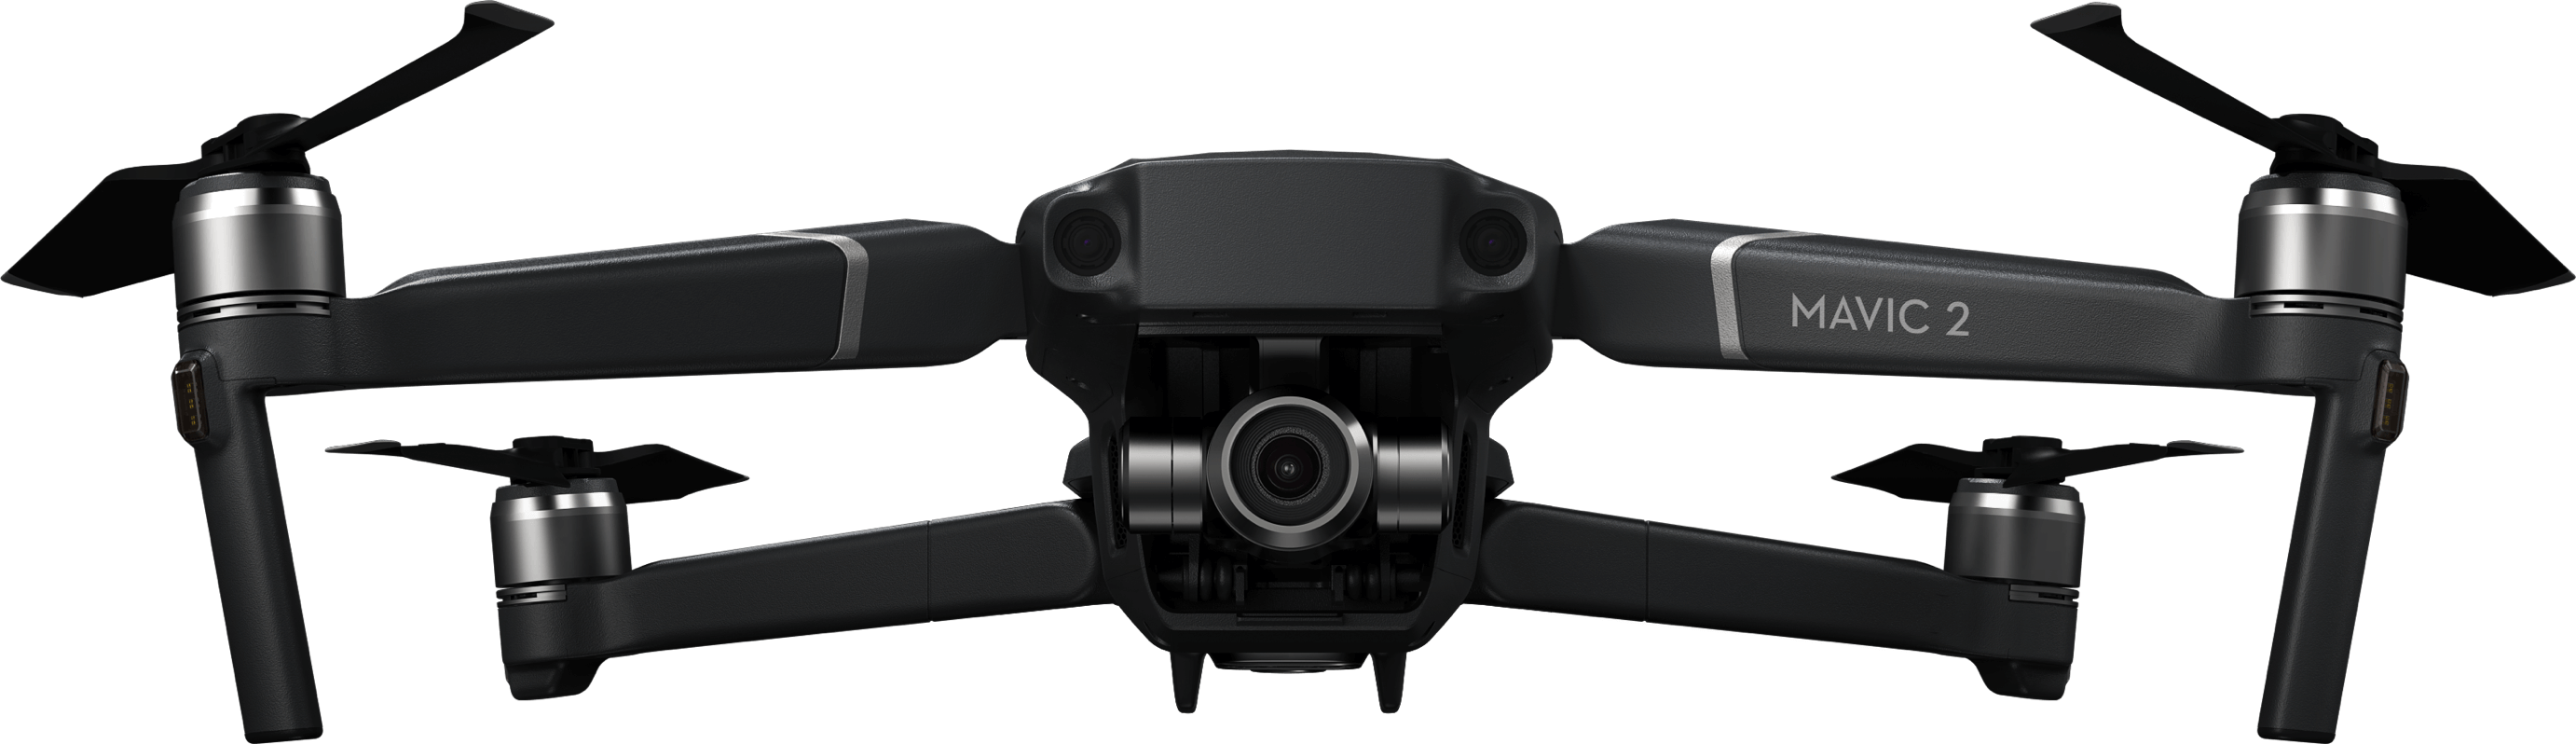 Mavic 2 - See the Bigger Picture - DJI